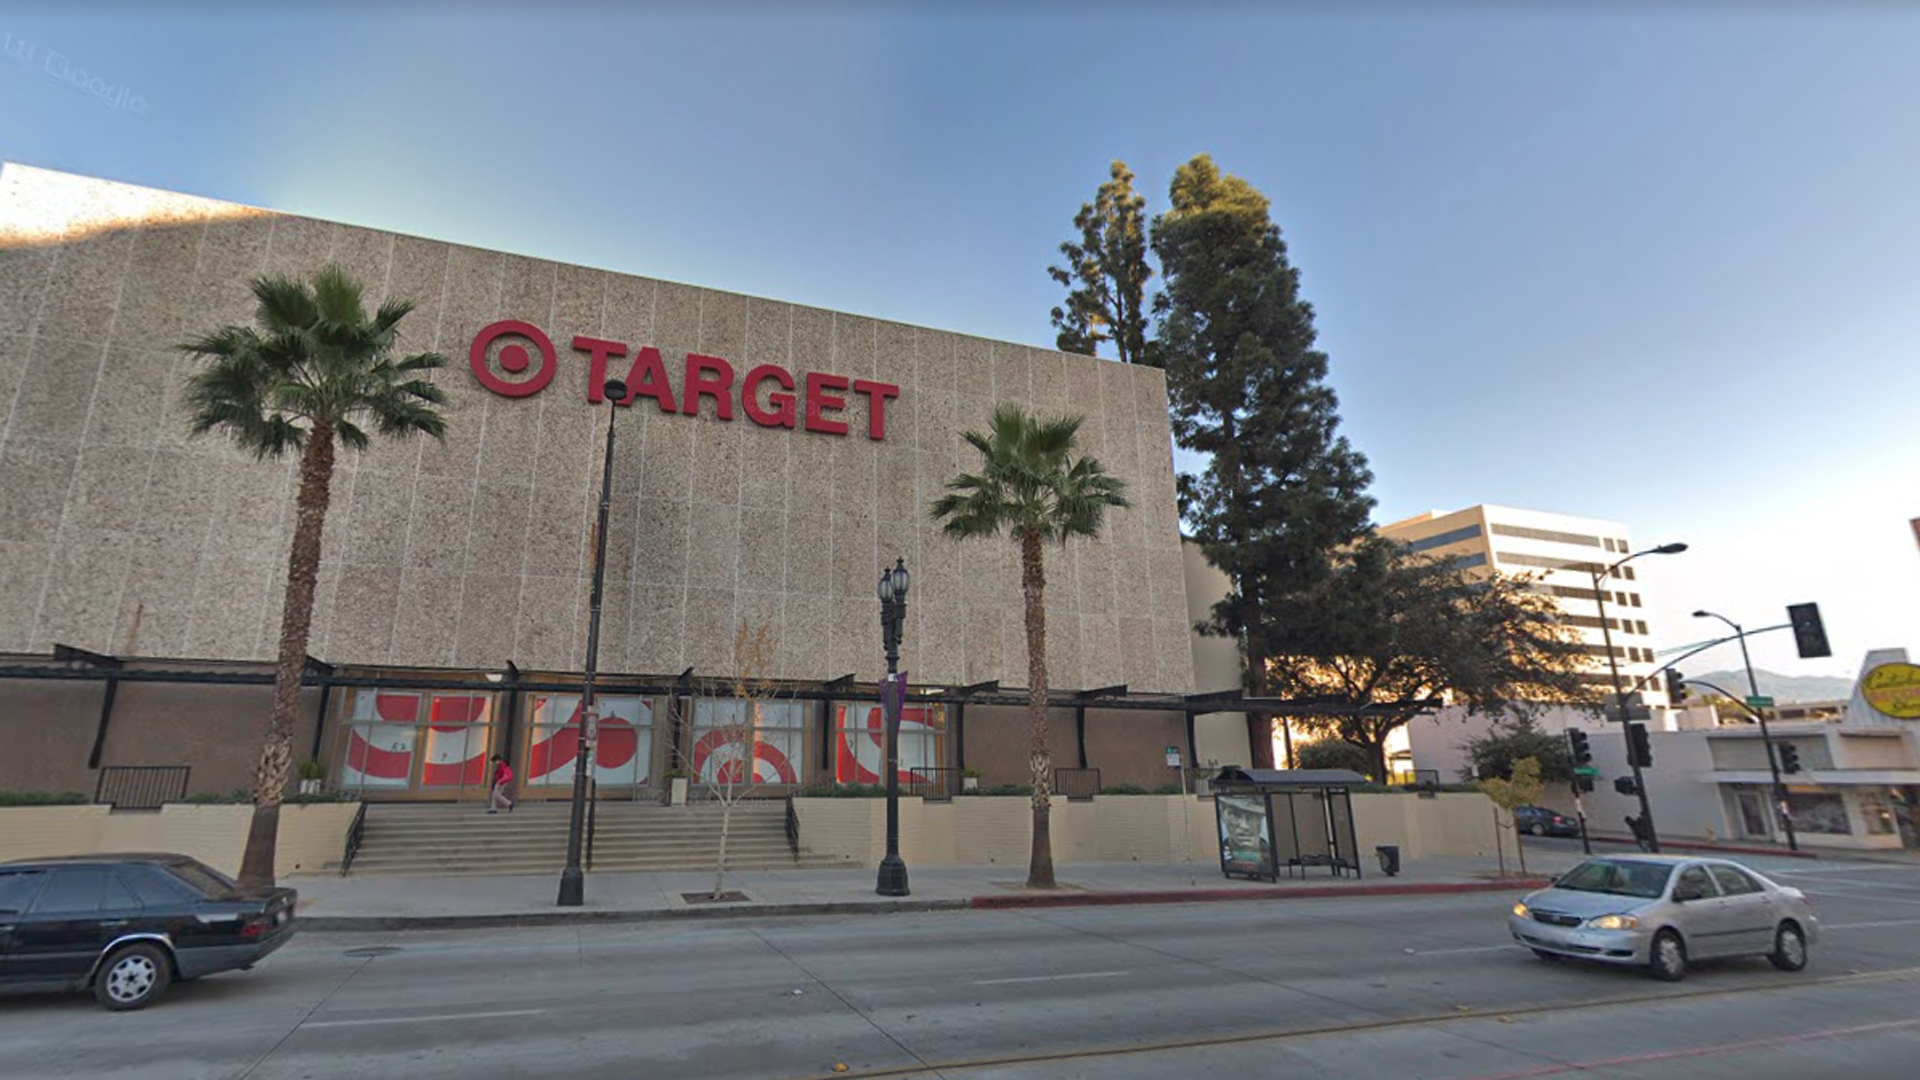 The Target store located at 777 East Colorado Boulevard in Pasadena is seen in this undated image. The stabbing of an employee at the store, by an accused shoplifter, was reported on Dec. 18, 2018. (Credit: Google Maps)